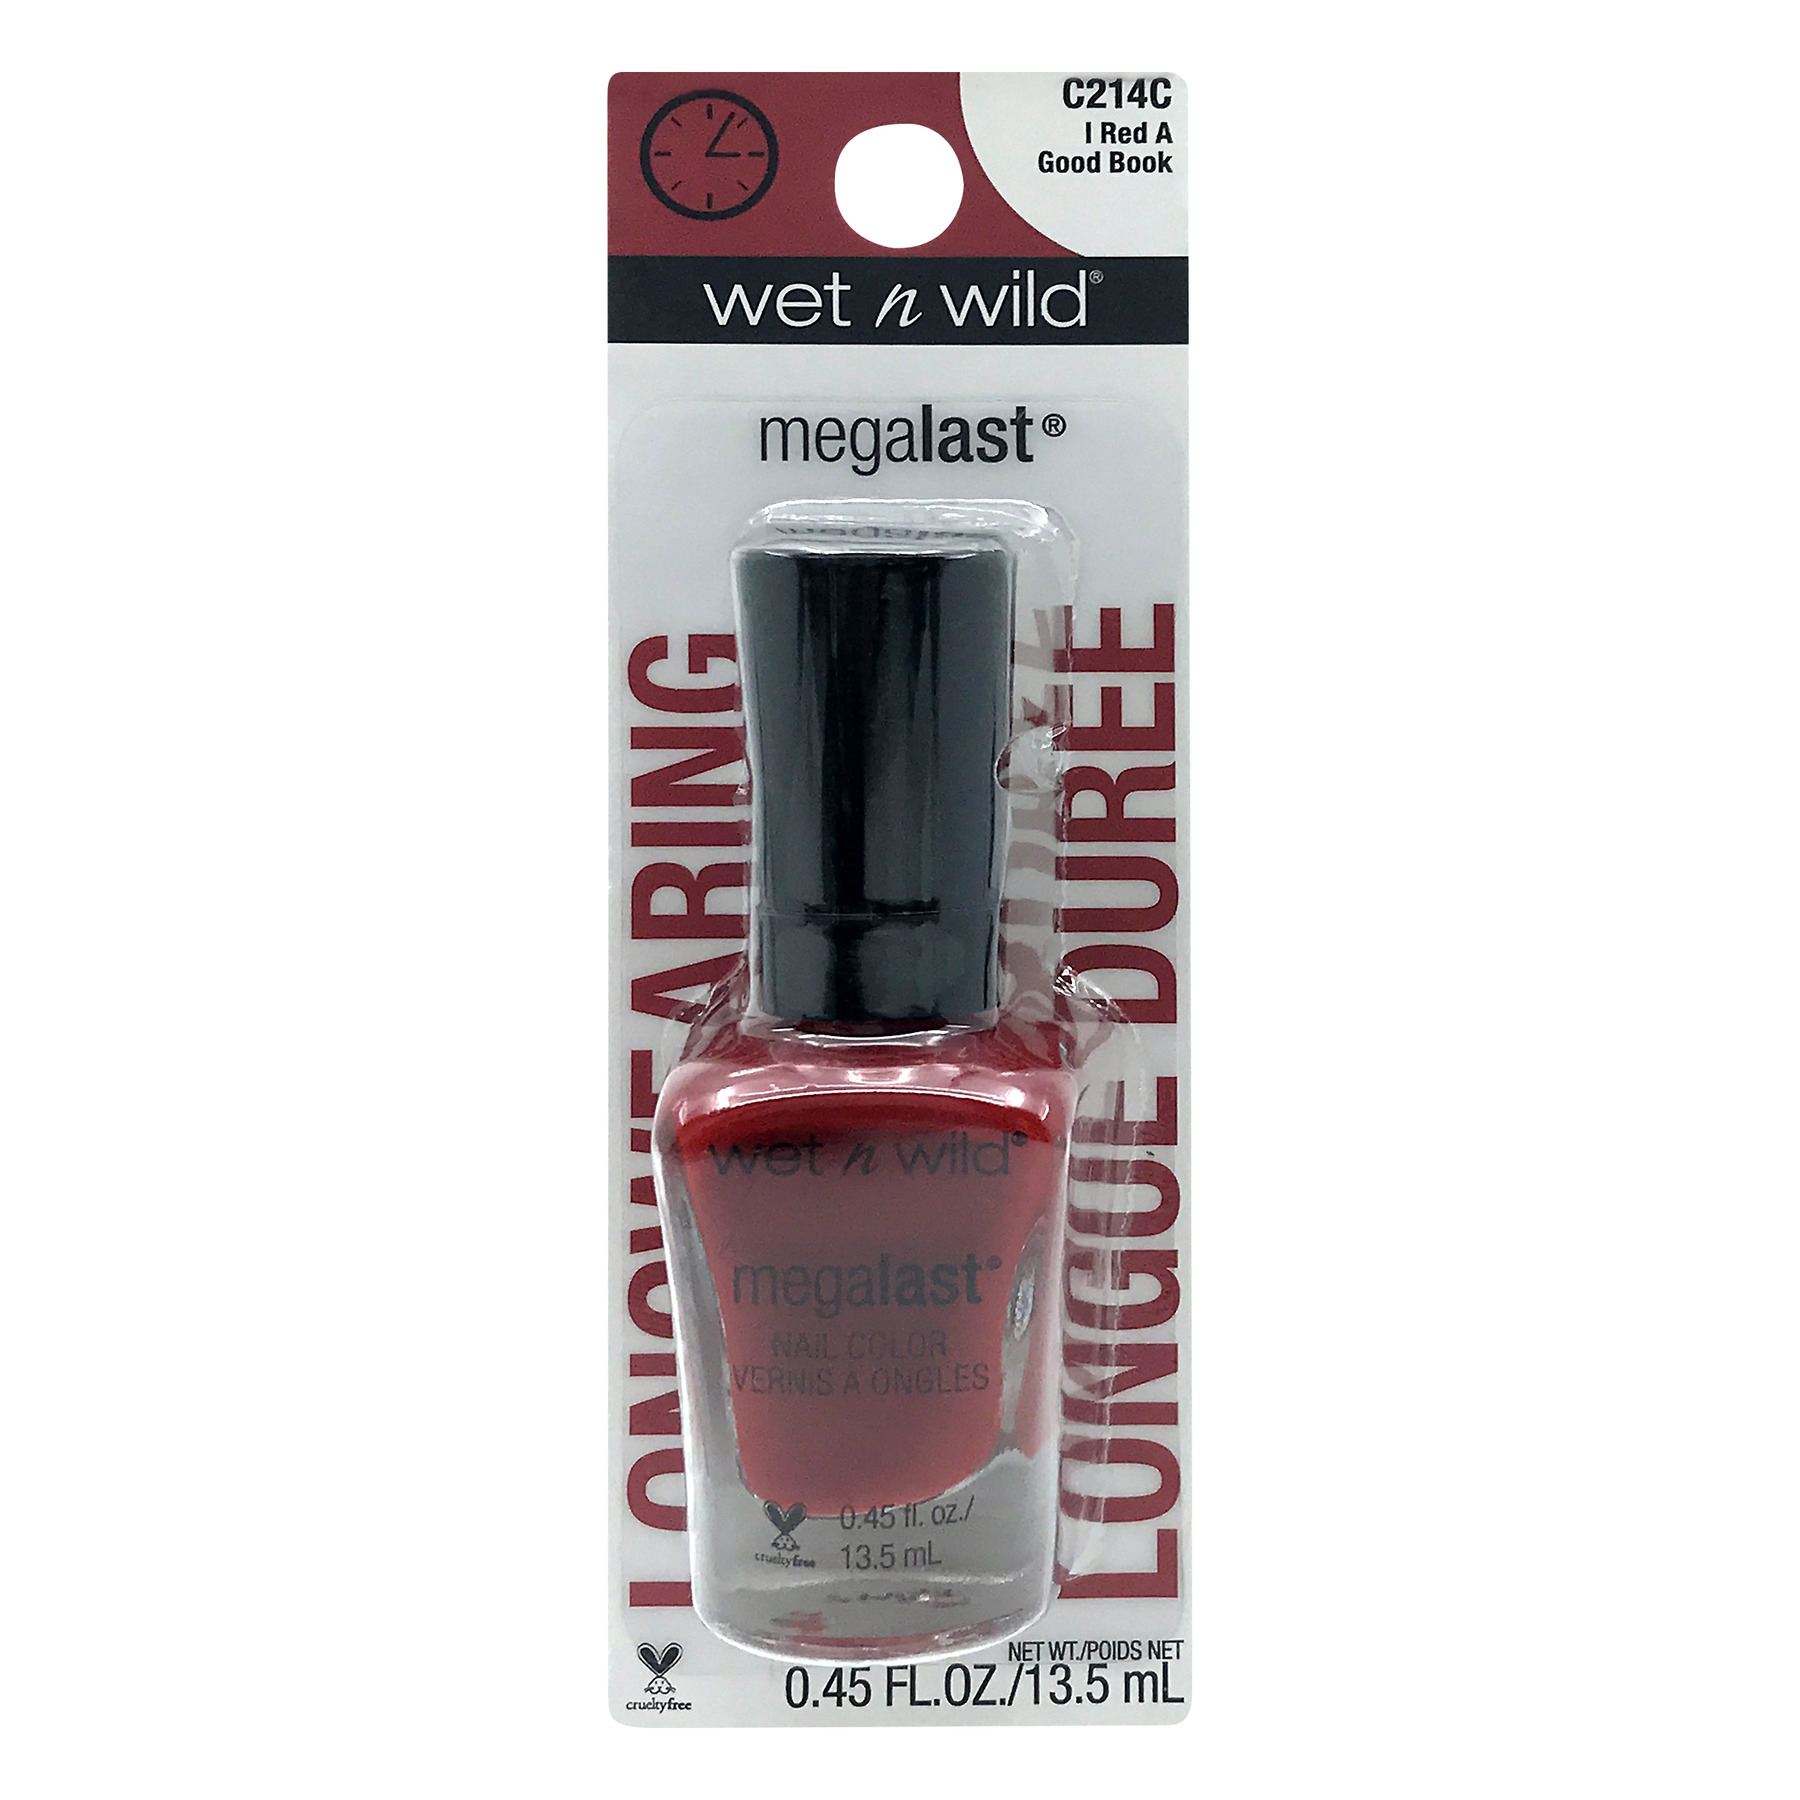 Wet n Wild Megalast Nail Color C214C I Red A Good Book, 0.45 FL OZ